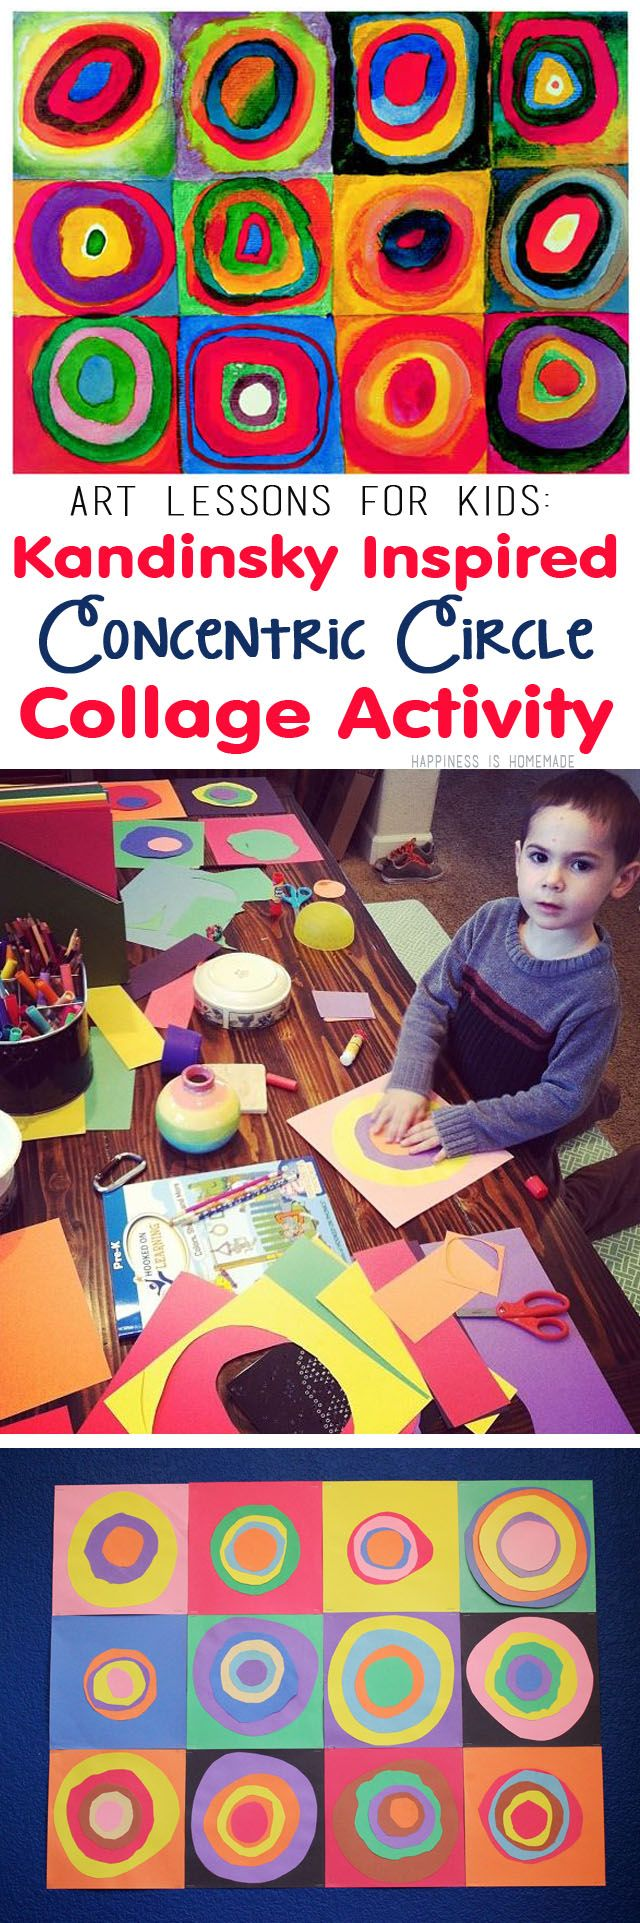 "Kids Art Lesson - Concentric Circles Collage inspired by Wassily Kandinsky's famous ""Farbstudie Quadrate"" (Squares with Concentric Circles/Rings) - great for homeschool art teachers!"